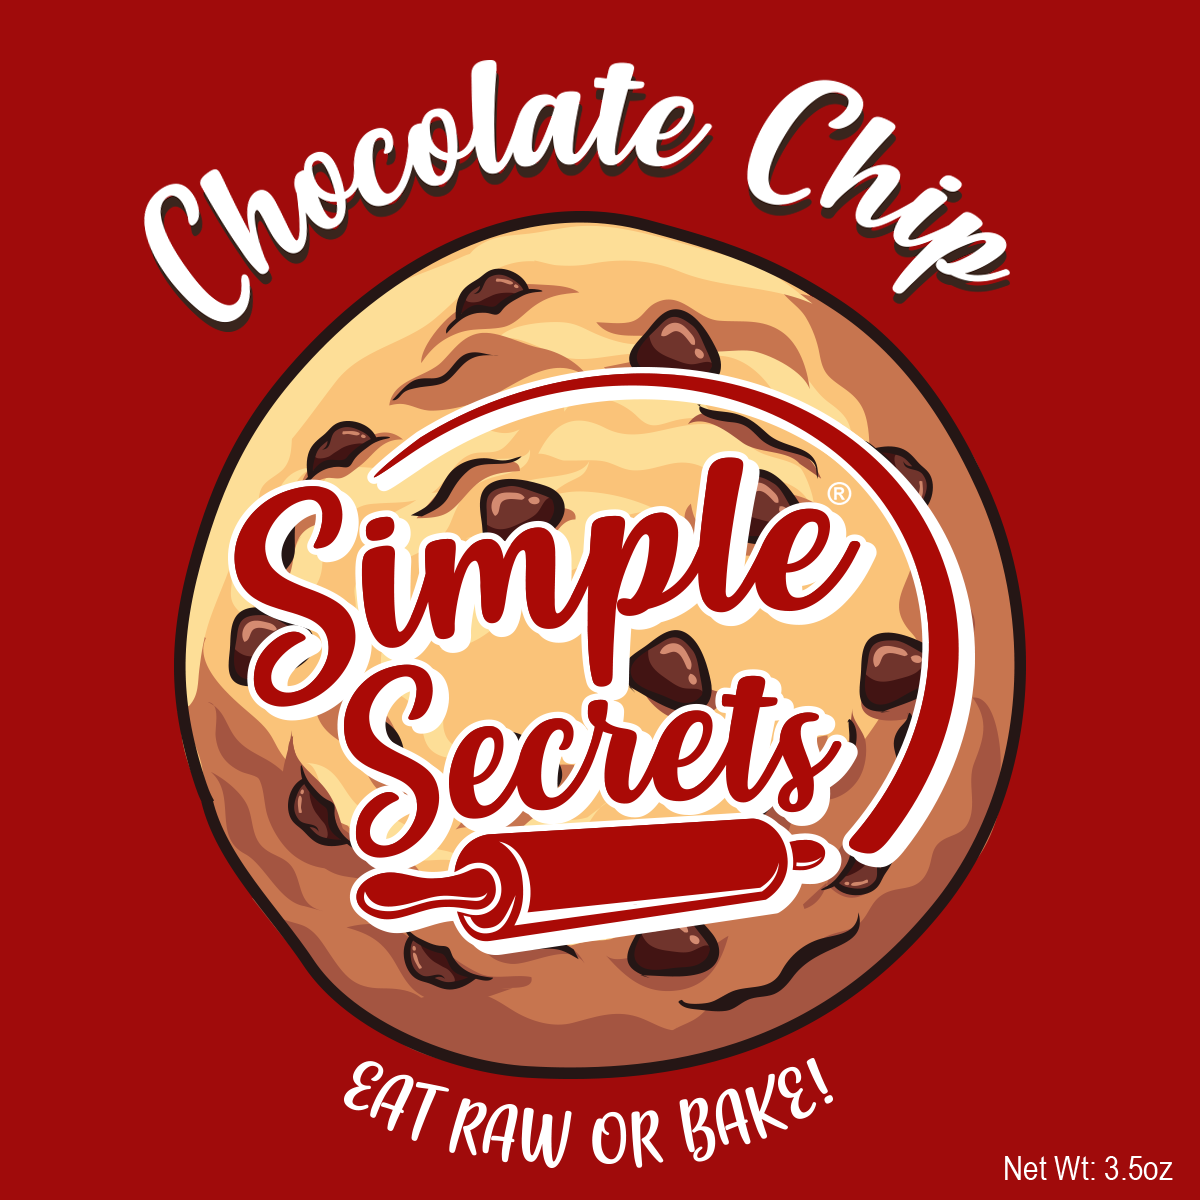 Packaging needed for cookie and dough products